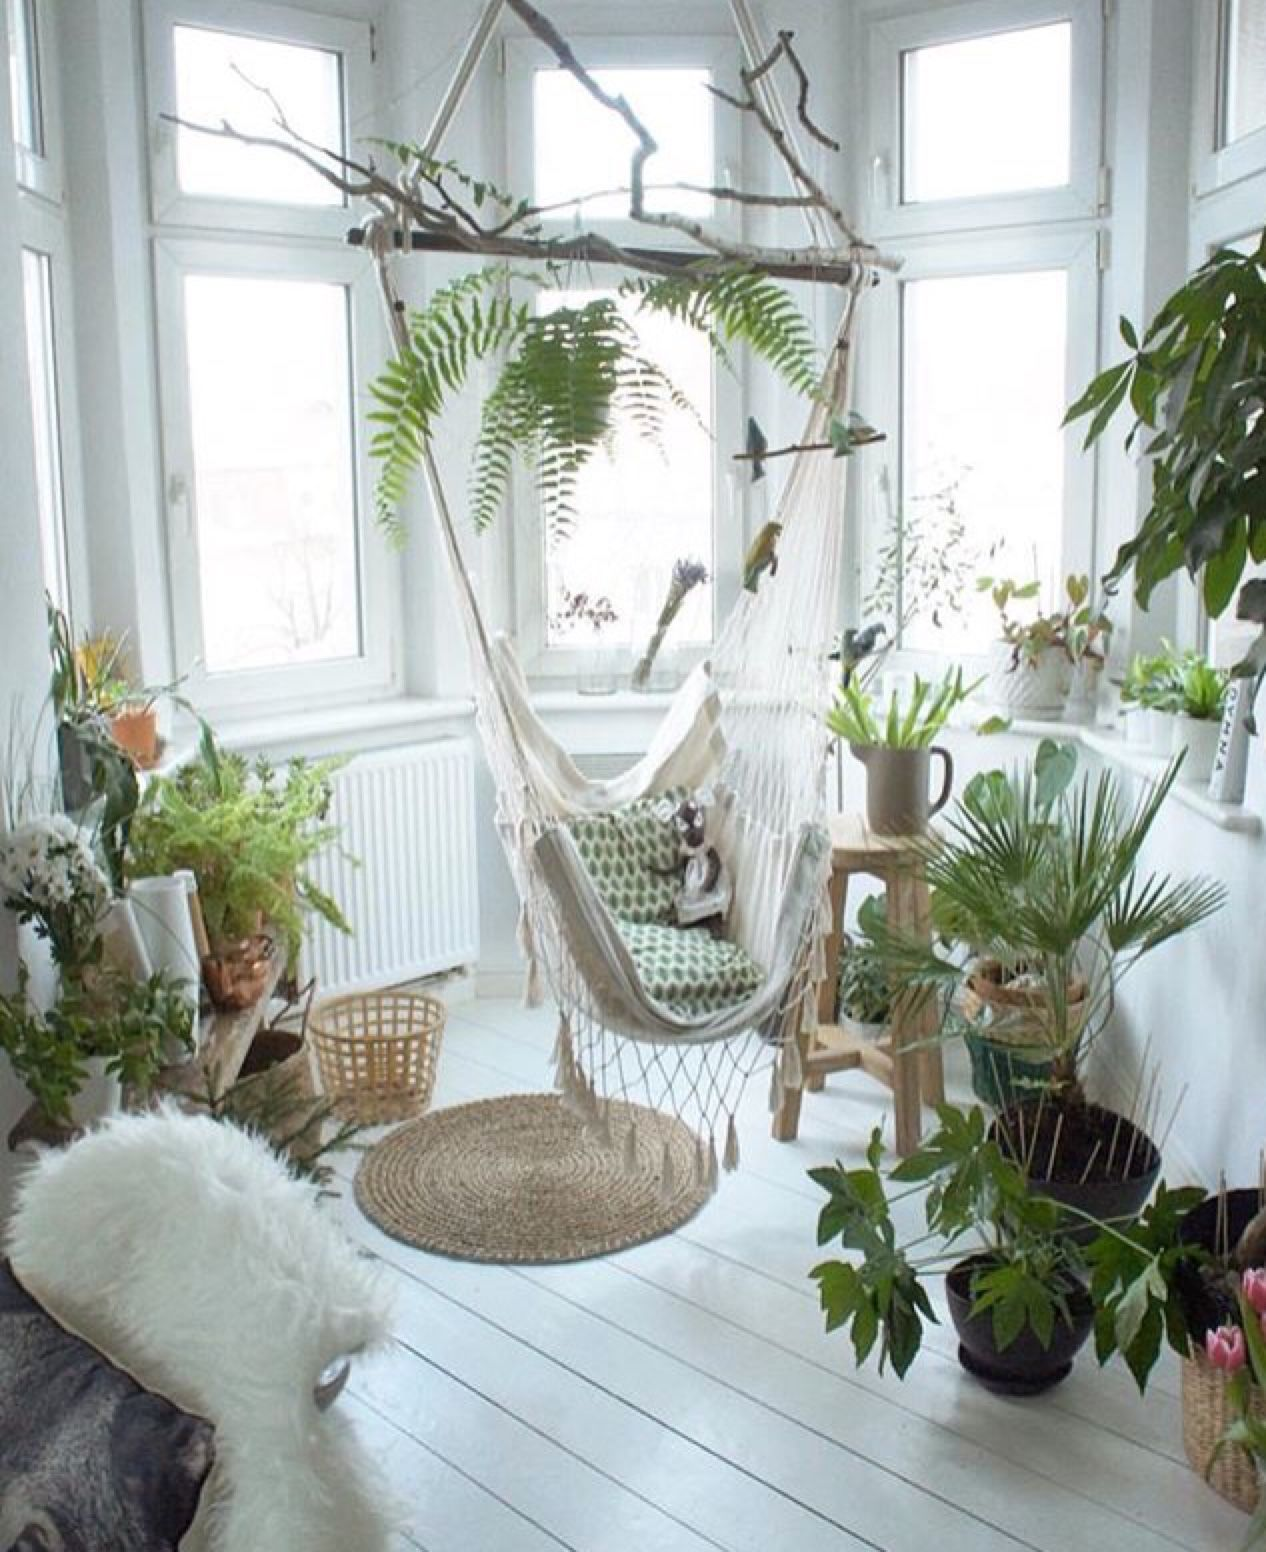 Rest room with a hammock in the center, a rug, cushions and plants around different types